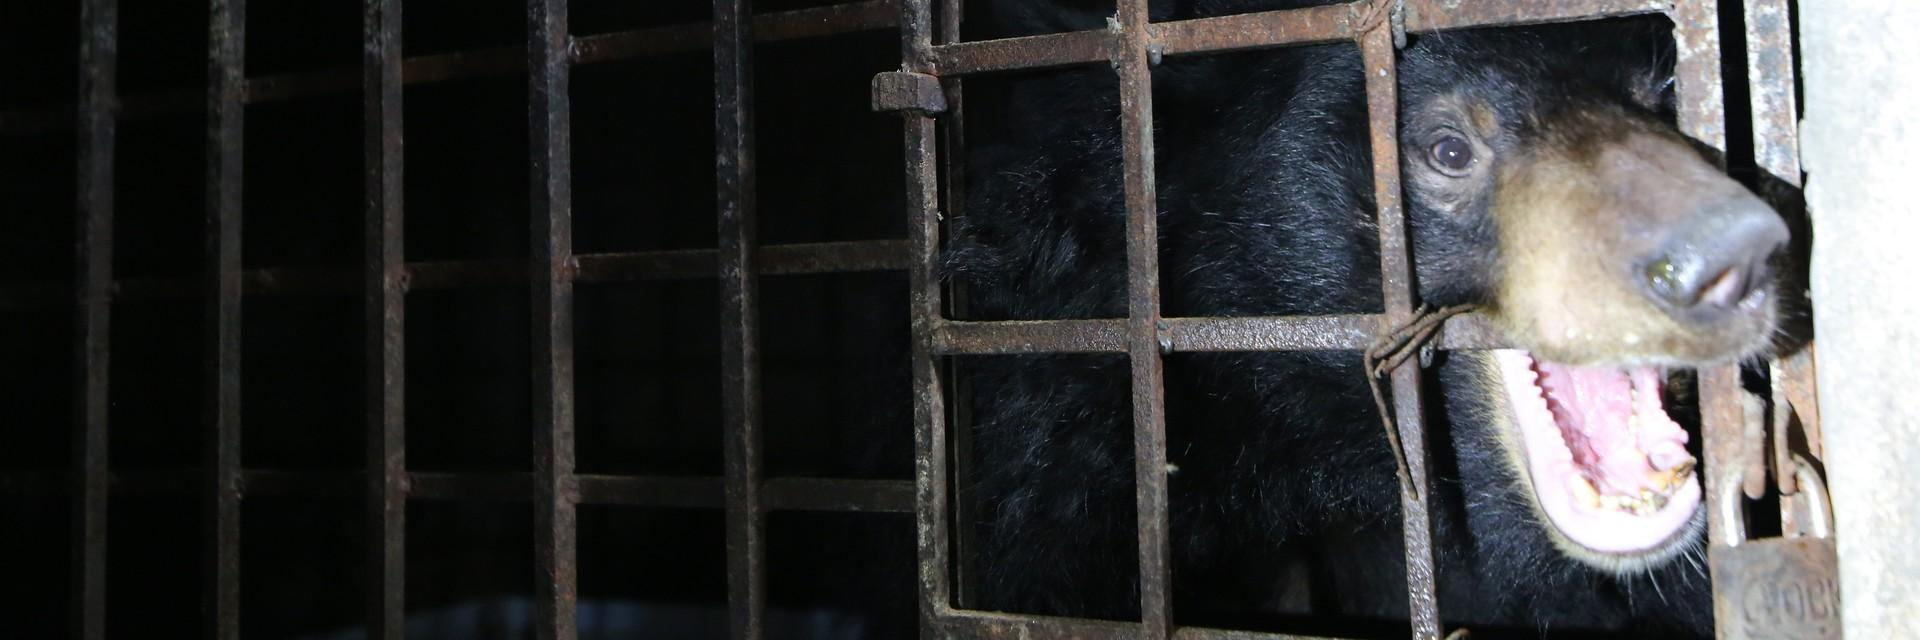 Bile bear Xuan in a cage